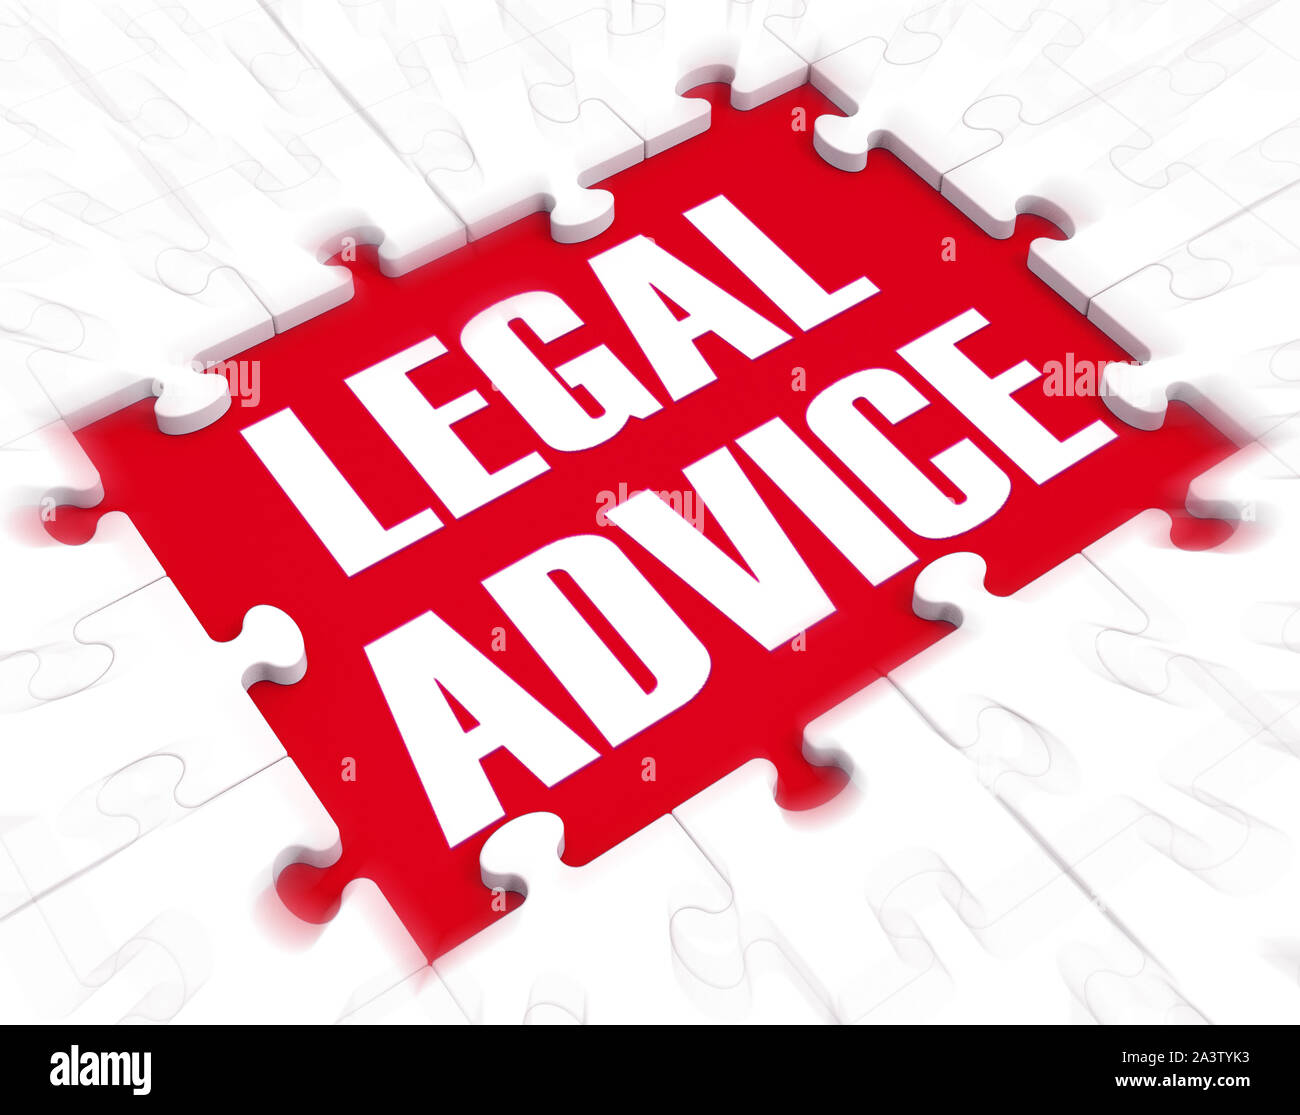 Legal advice concept means getting defence from a lawyer or Counsel. Consultation and guidance from an expert - 3d illustration Stock Photo